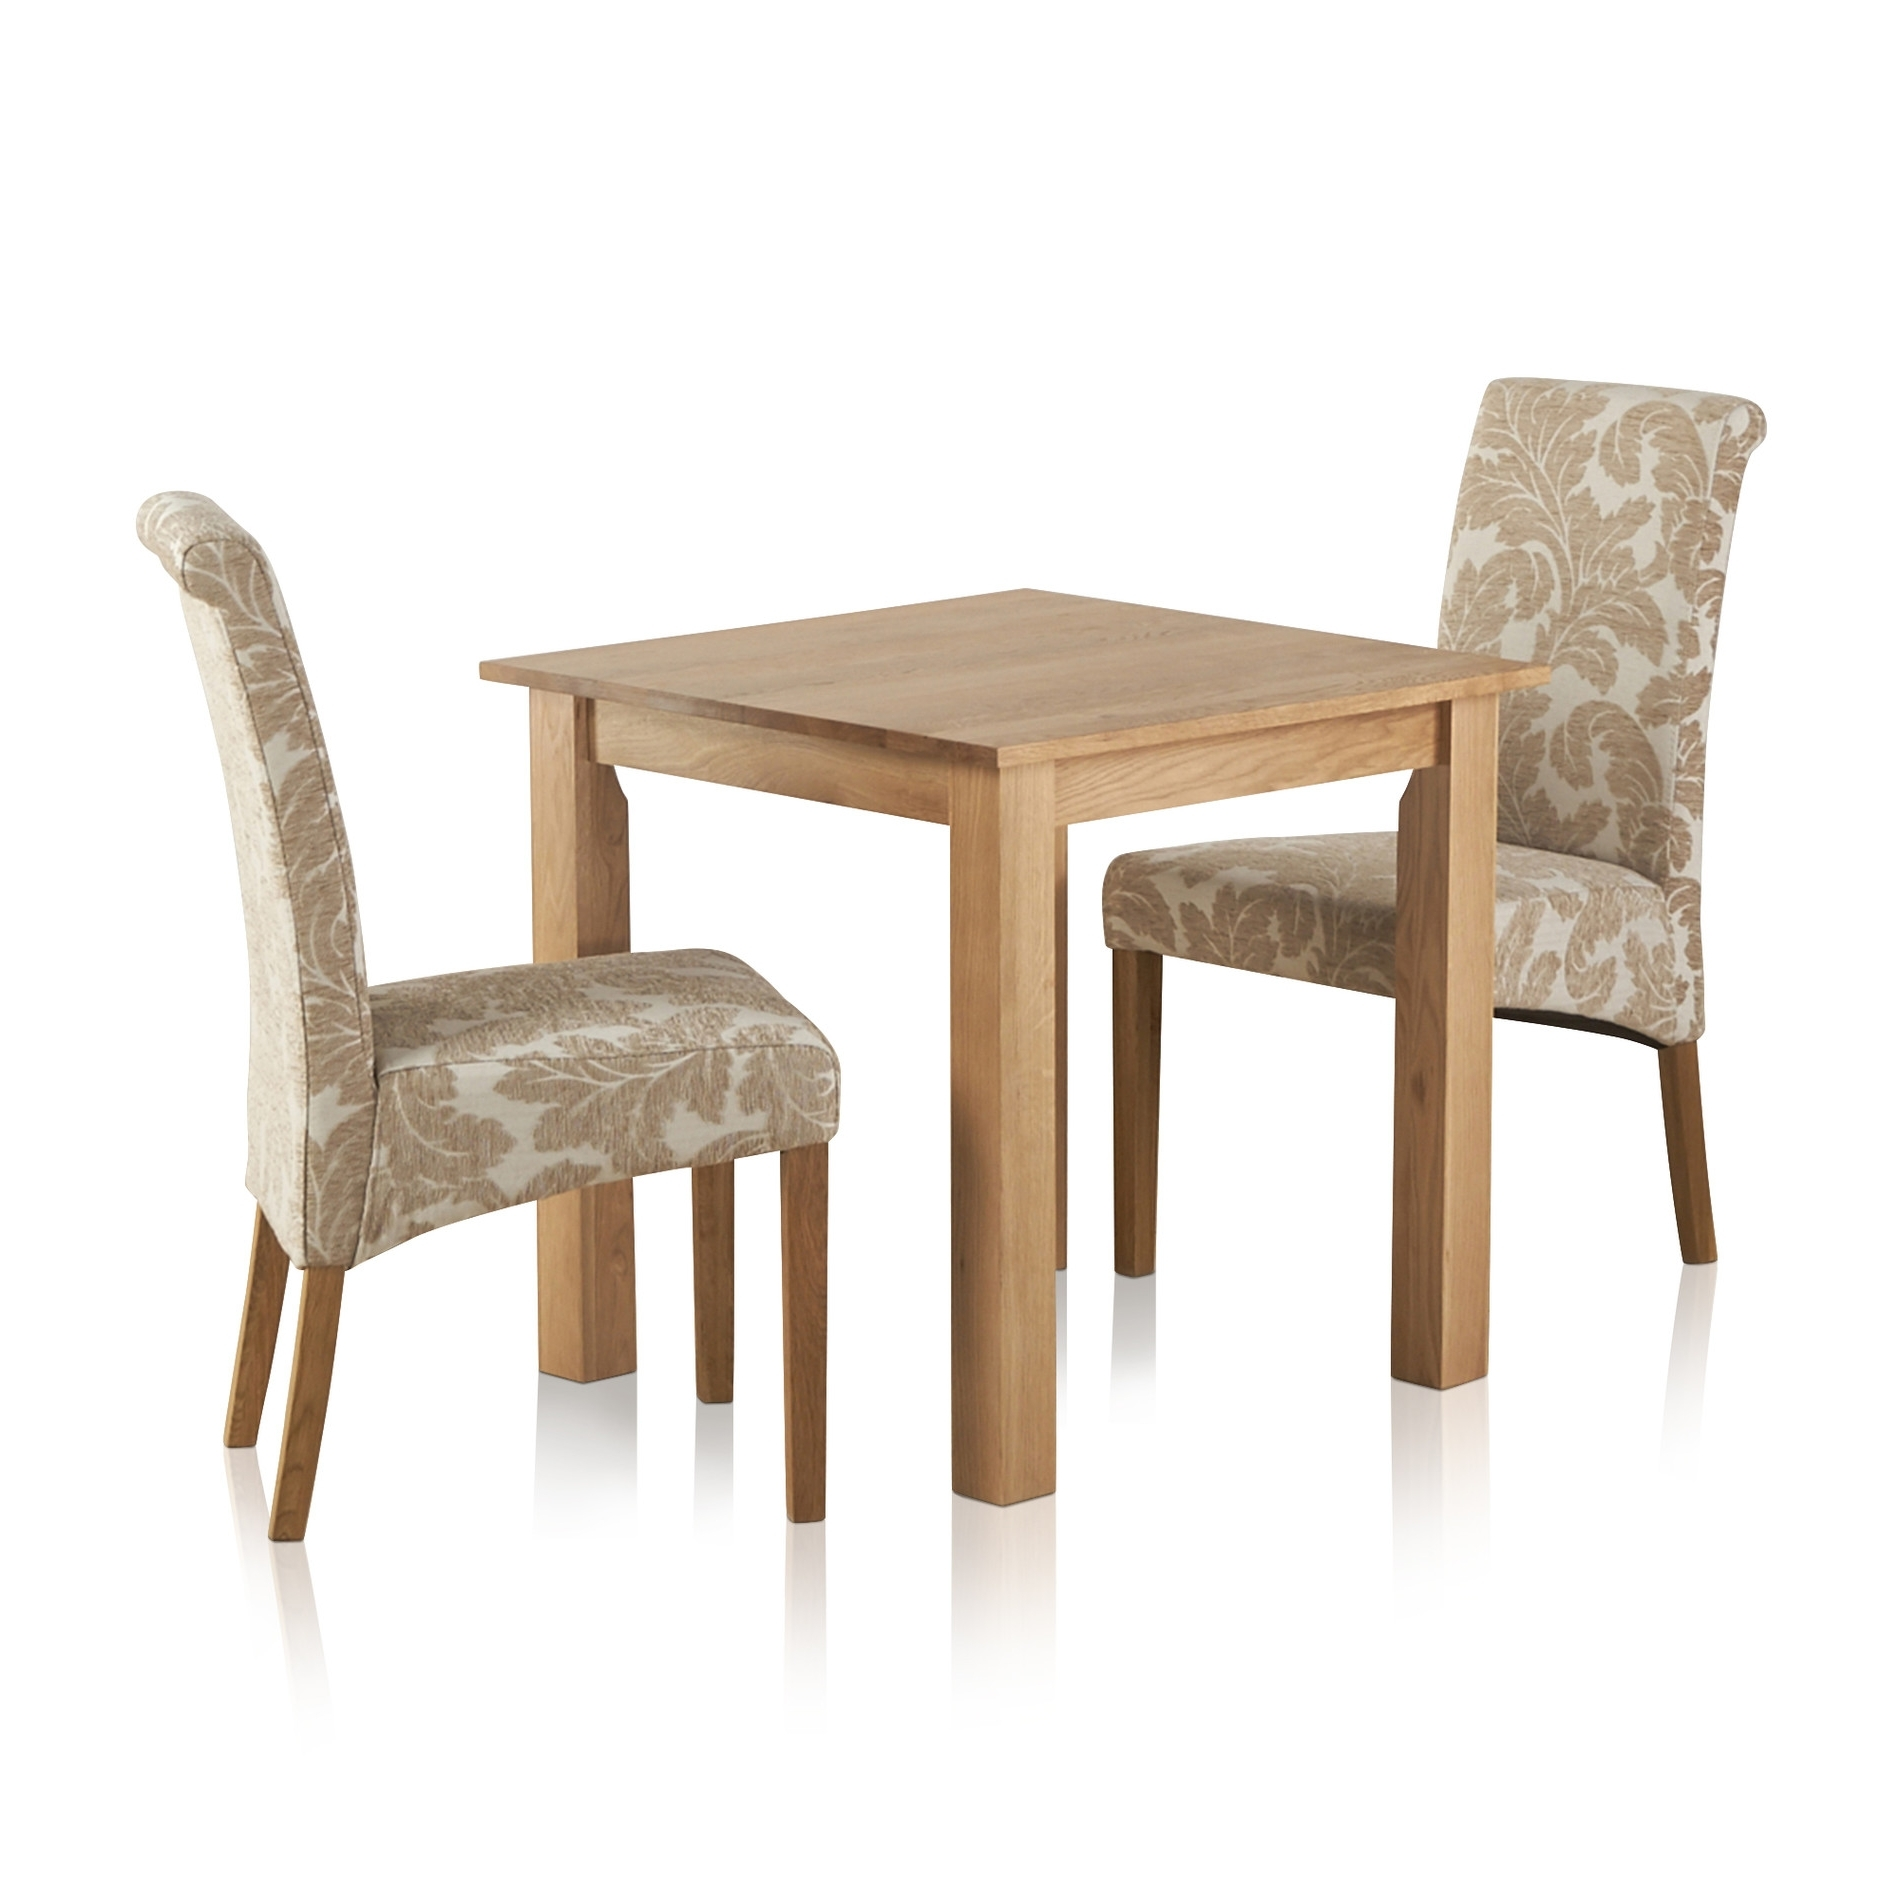 Popular Hudson Dining Set In Solid Oak: Table + 2 Patterned Beige Chairs Within Hudson Dining Tables And Chairs (Gallery 20 of 25)